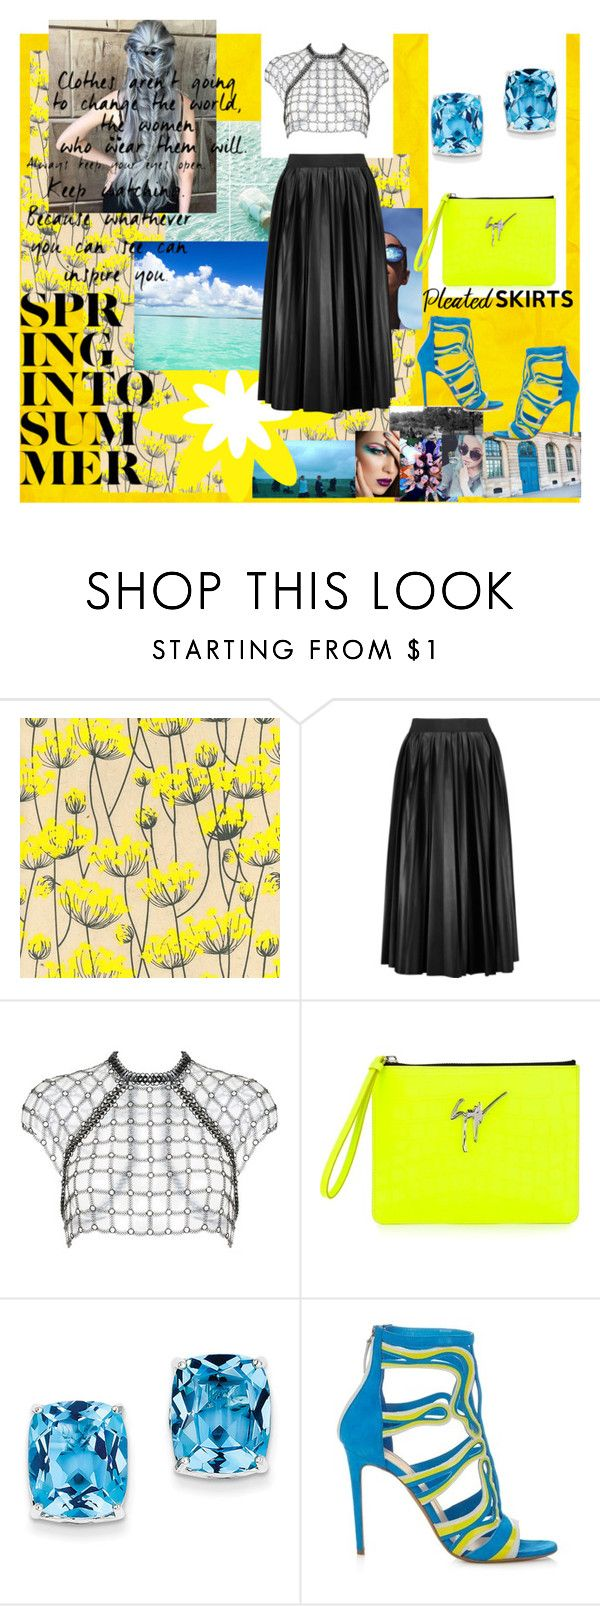 """""""blueted"""" by artwithmode ❤ liked on Polyvore featuring Le Specs, Lanvin, Fannie Schiavoni, Giuseppe Zanotti, Kevin Jewelers, Peter Pilotto and pleatedskirts"""